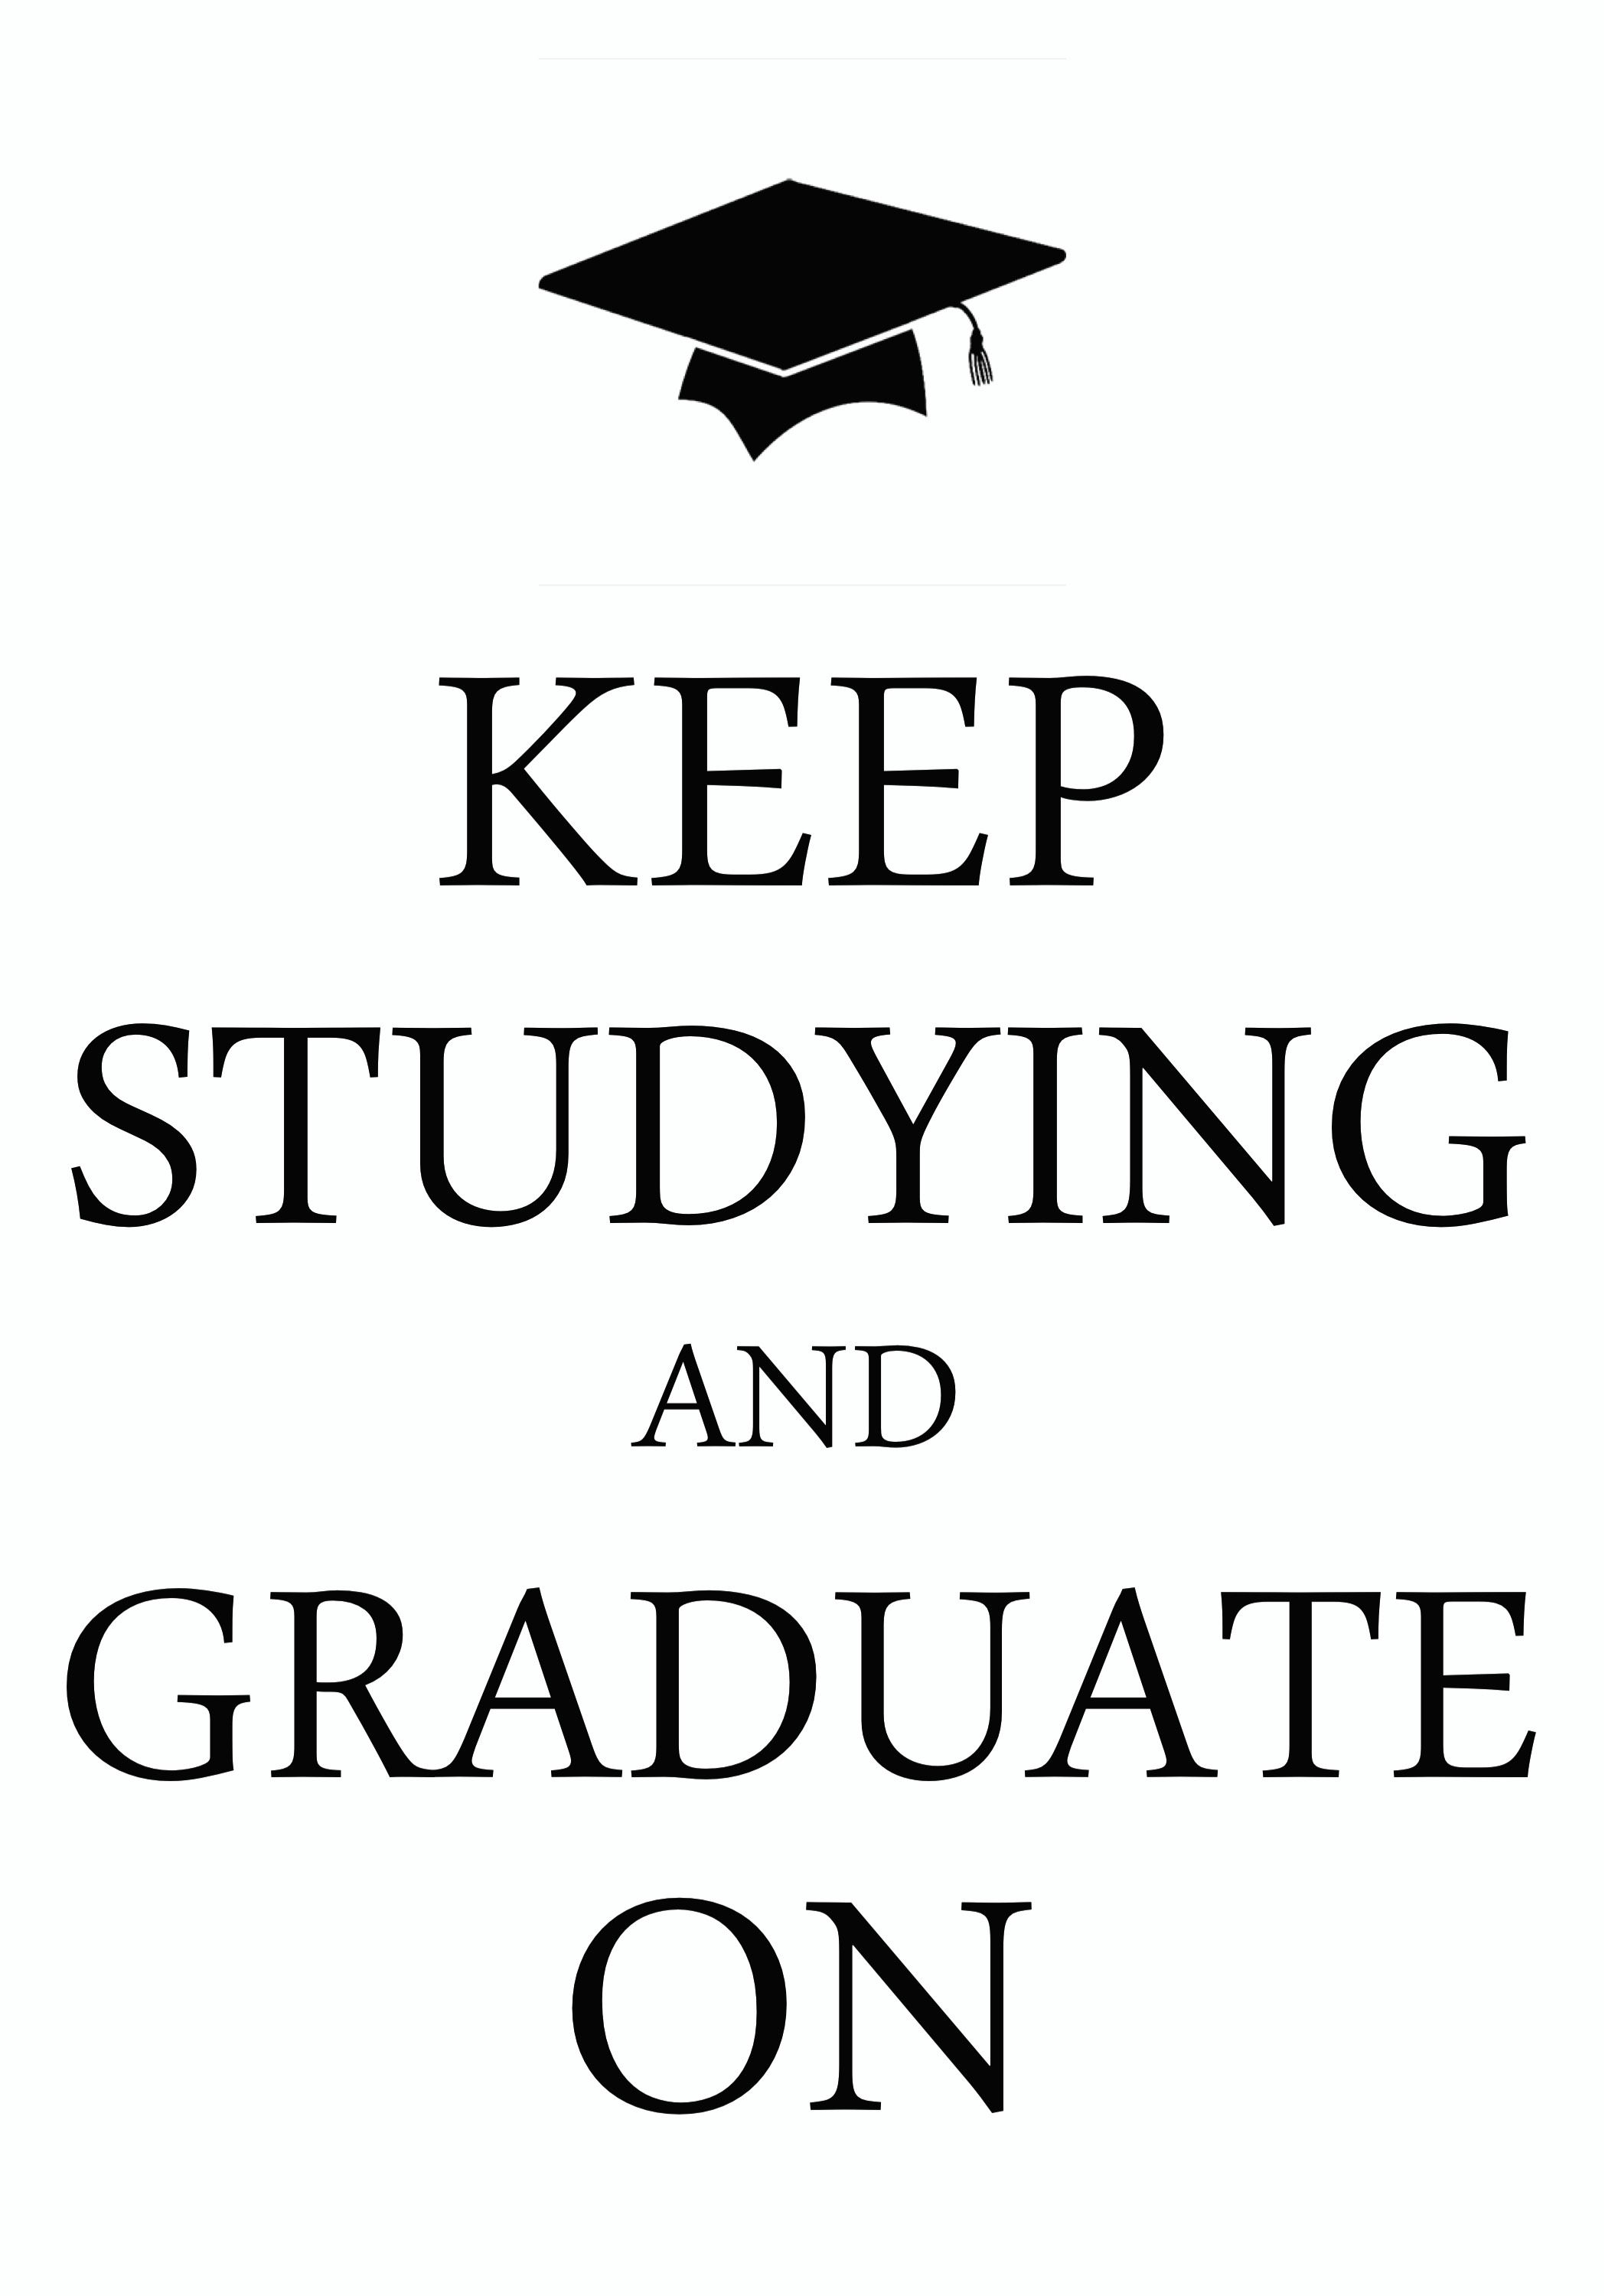 keep studying and graduate on / created with Keep Calm and Carry On for iOS #keepcalm #graduation